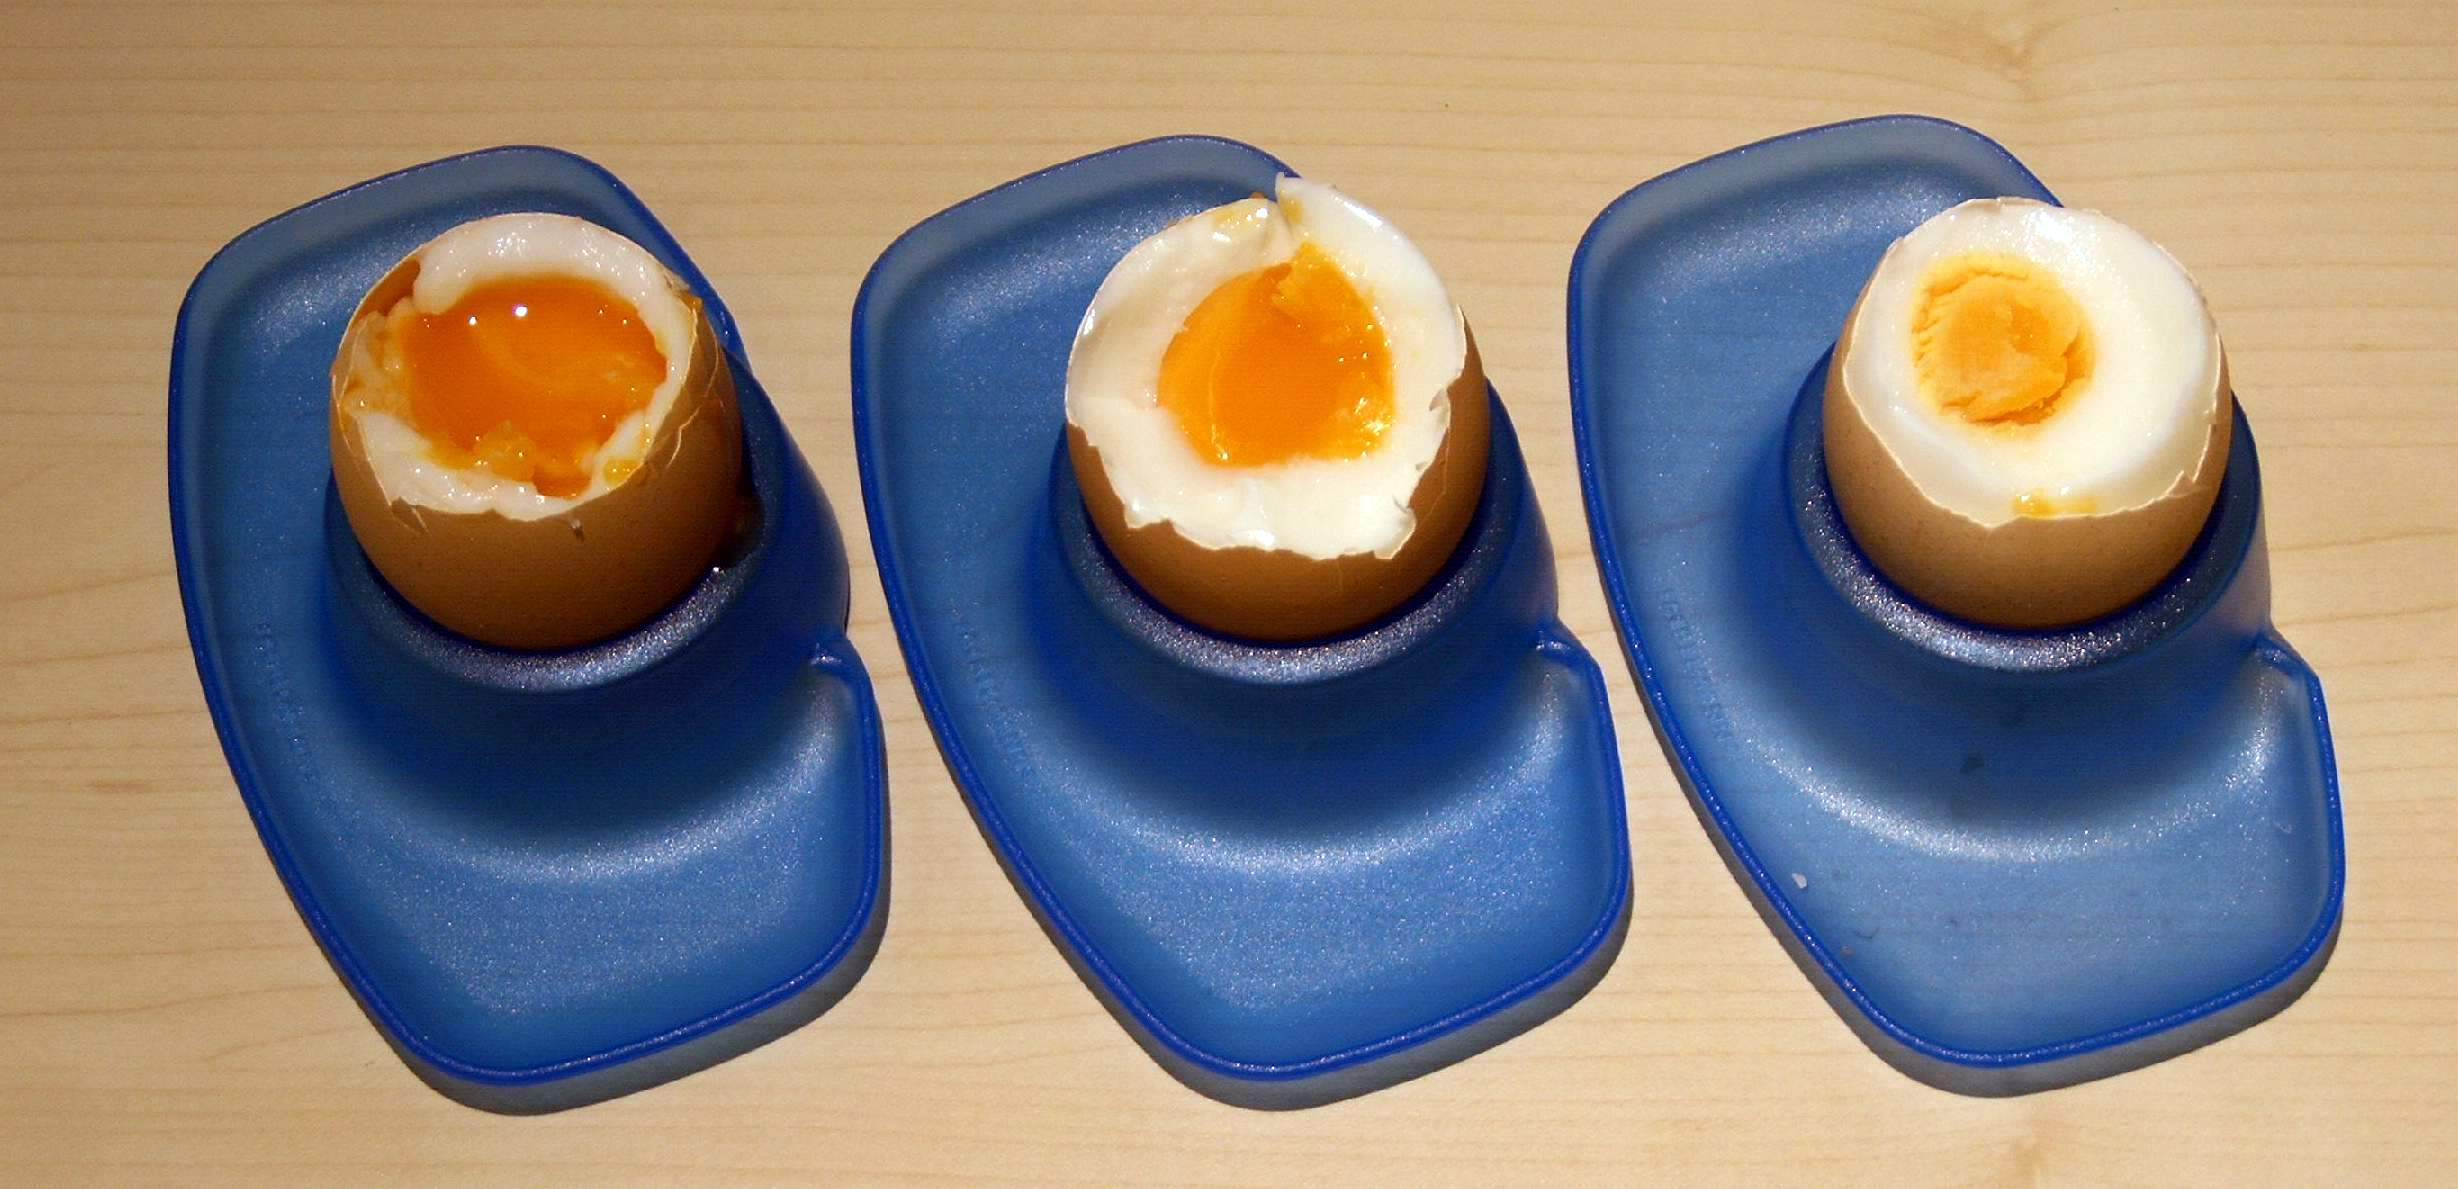 Shell Holder Chart: Boiled egg - Wikipedia,Chart